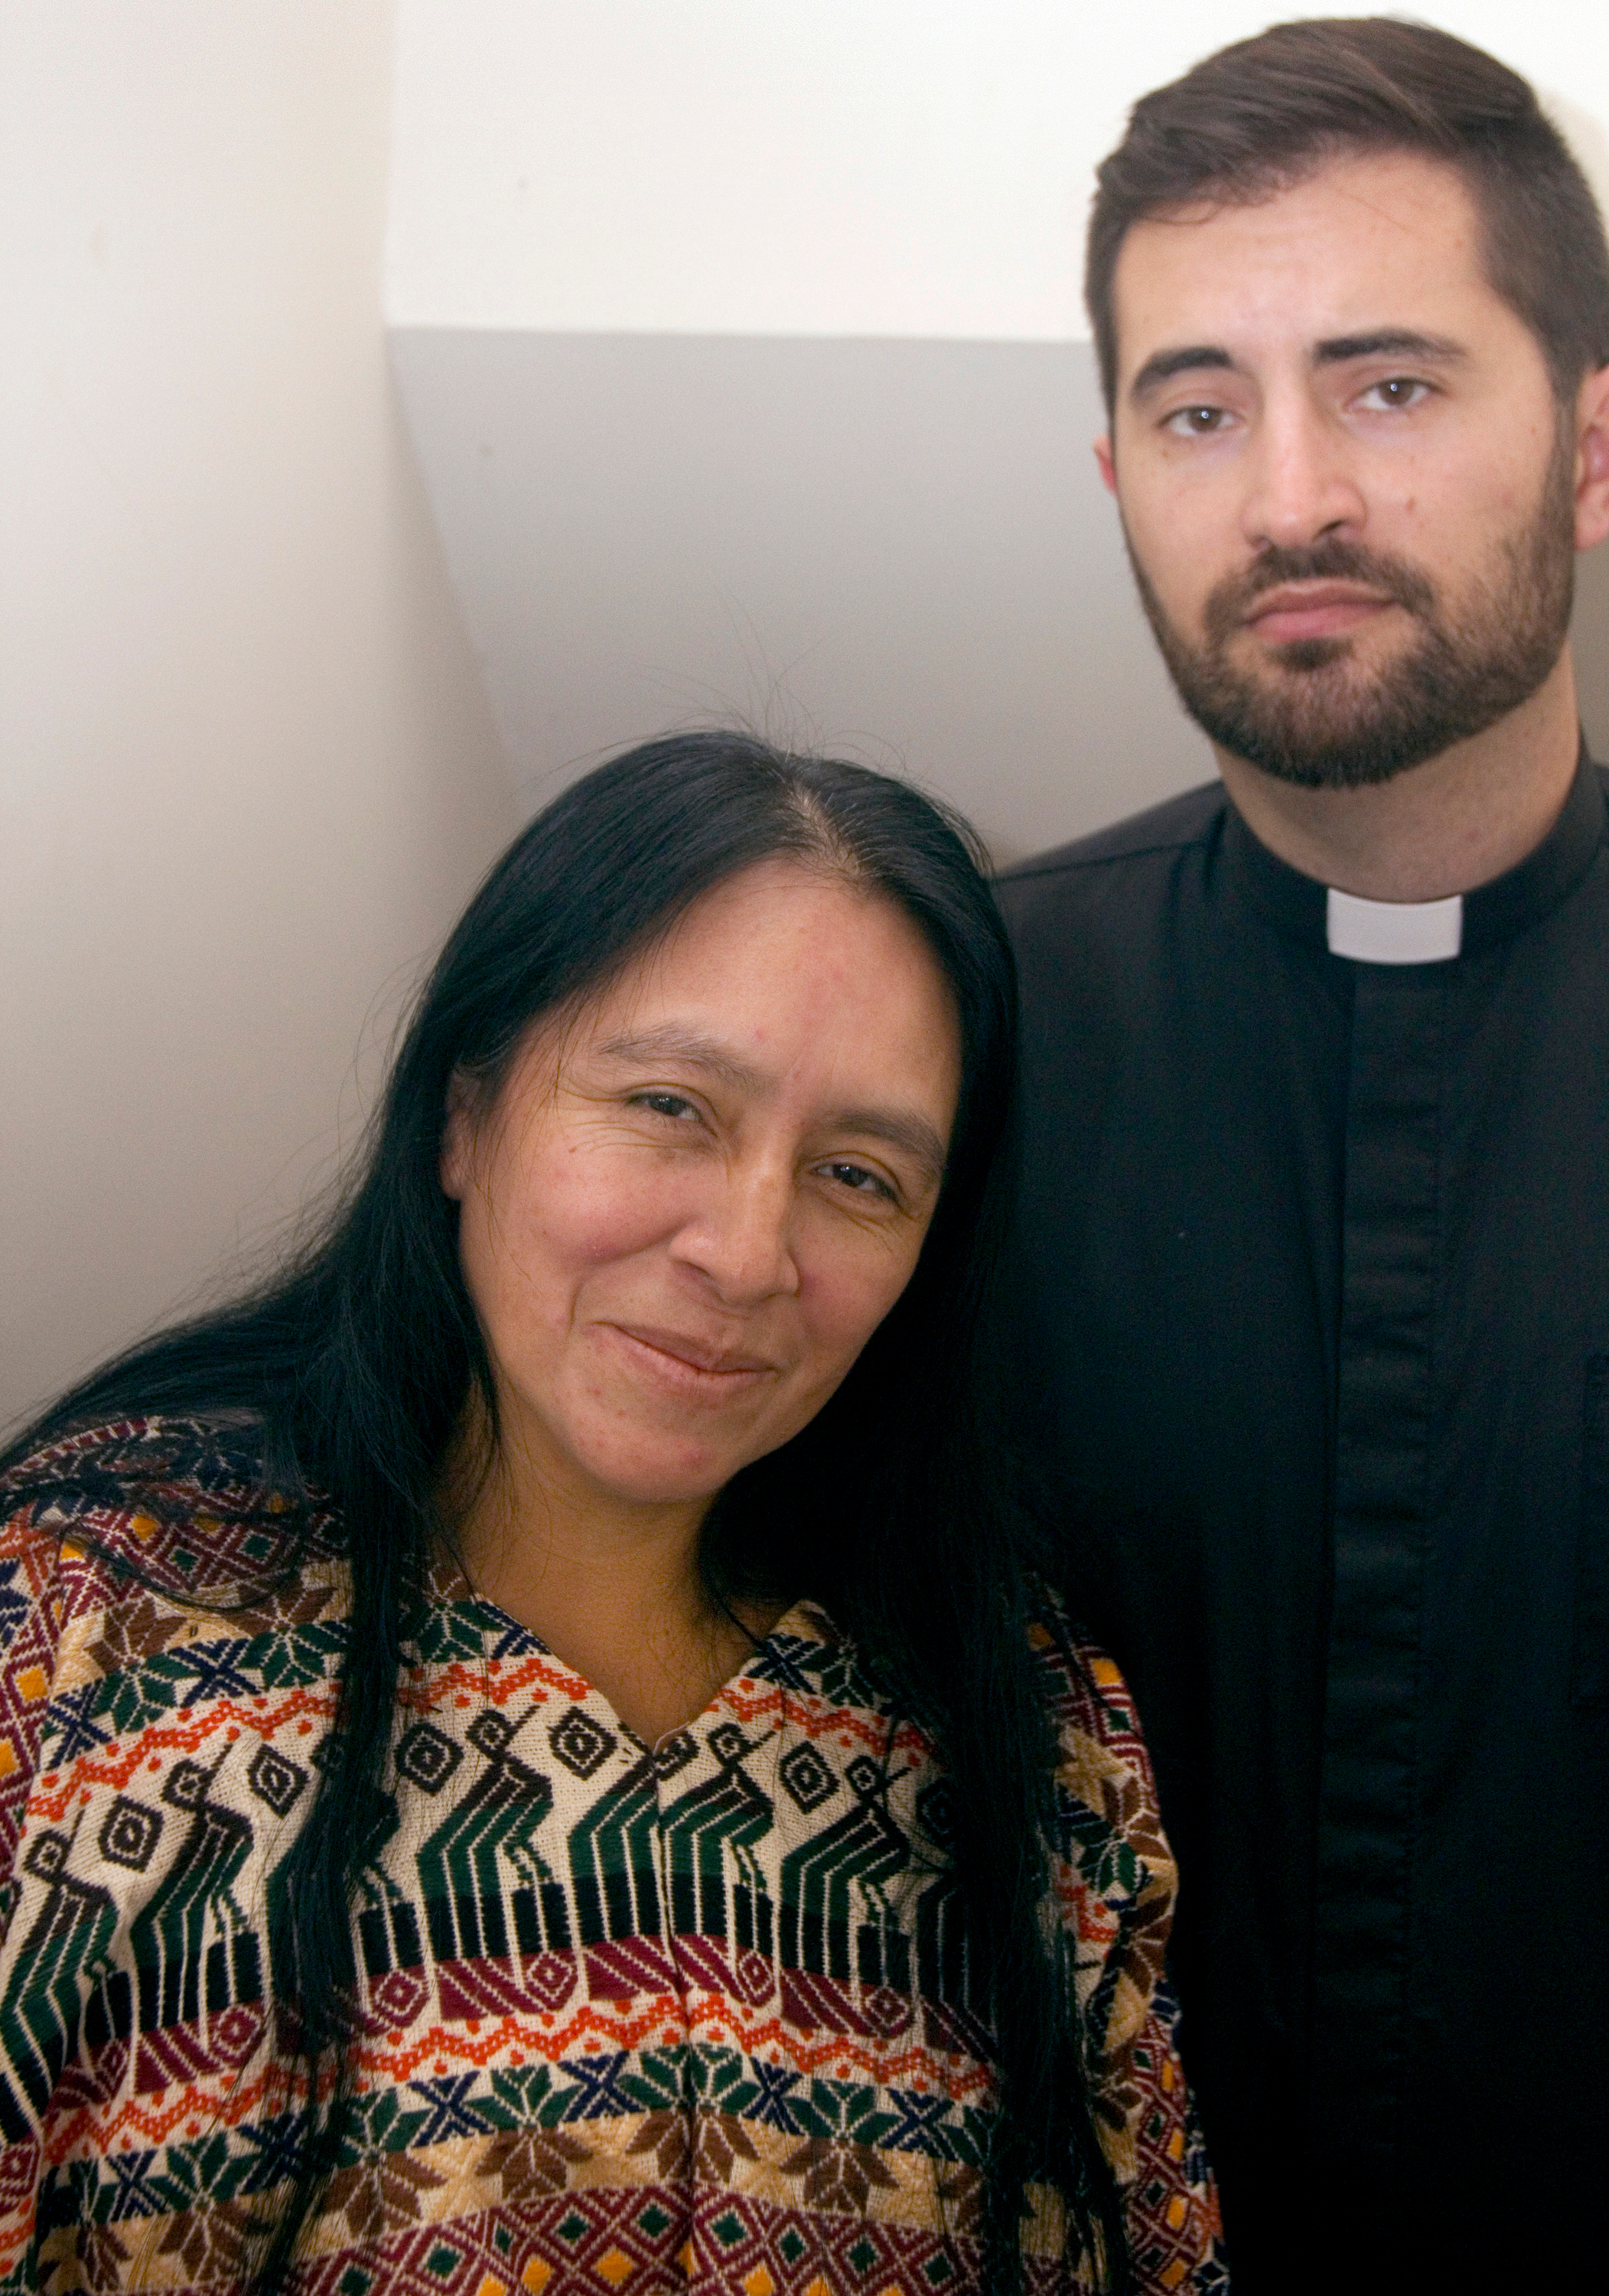 Maria Chavalan Sut stands with the Rev. Isaac Collins, pastor of Wesley Memorial United Methodist Church, at a press conference held Oct. 8. Chavalan Sut is living in the church to avoid deportation. Photo: © Richard Lord.